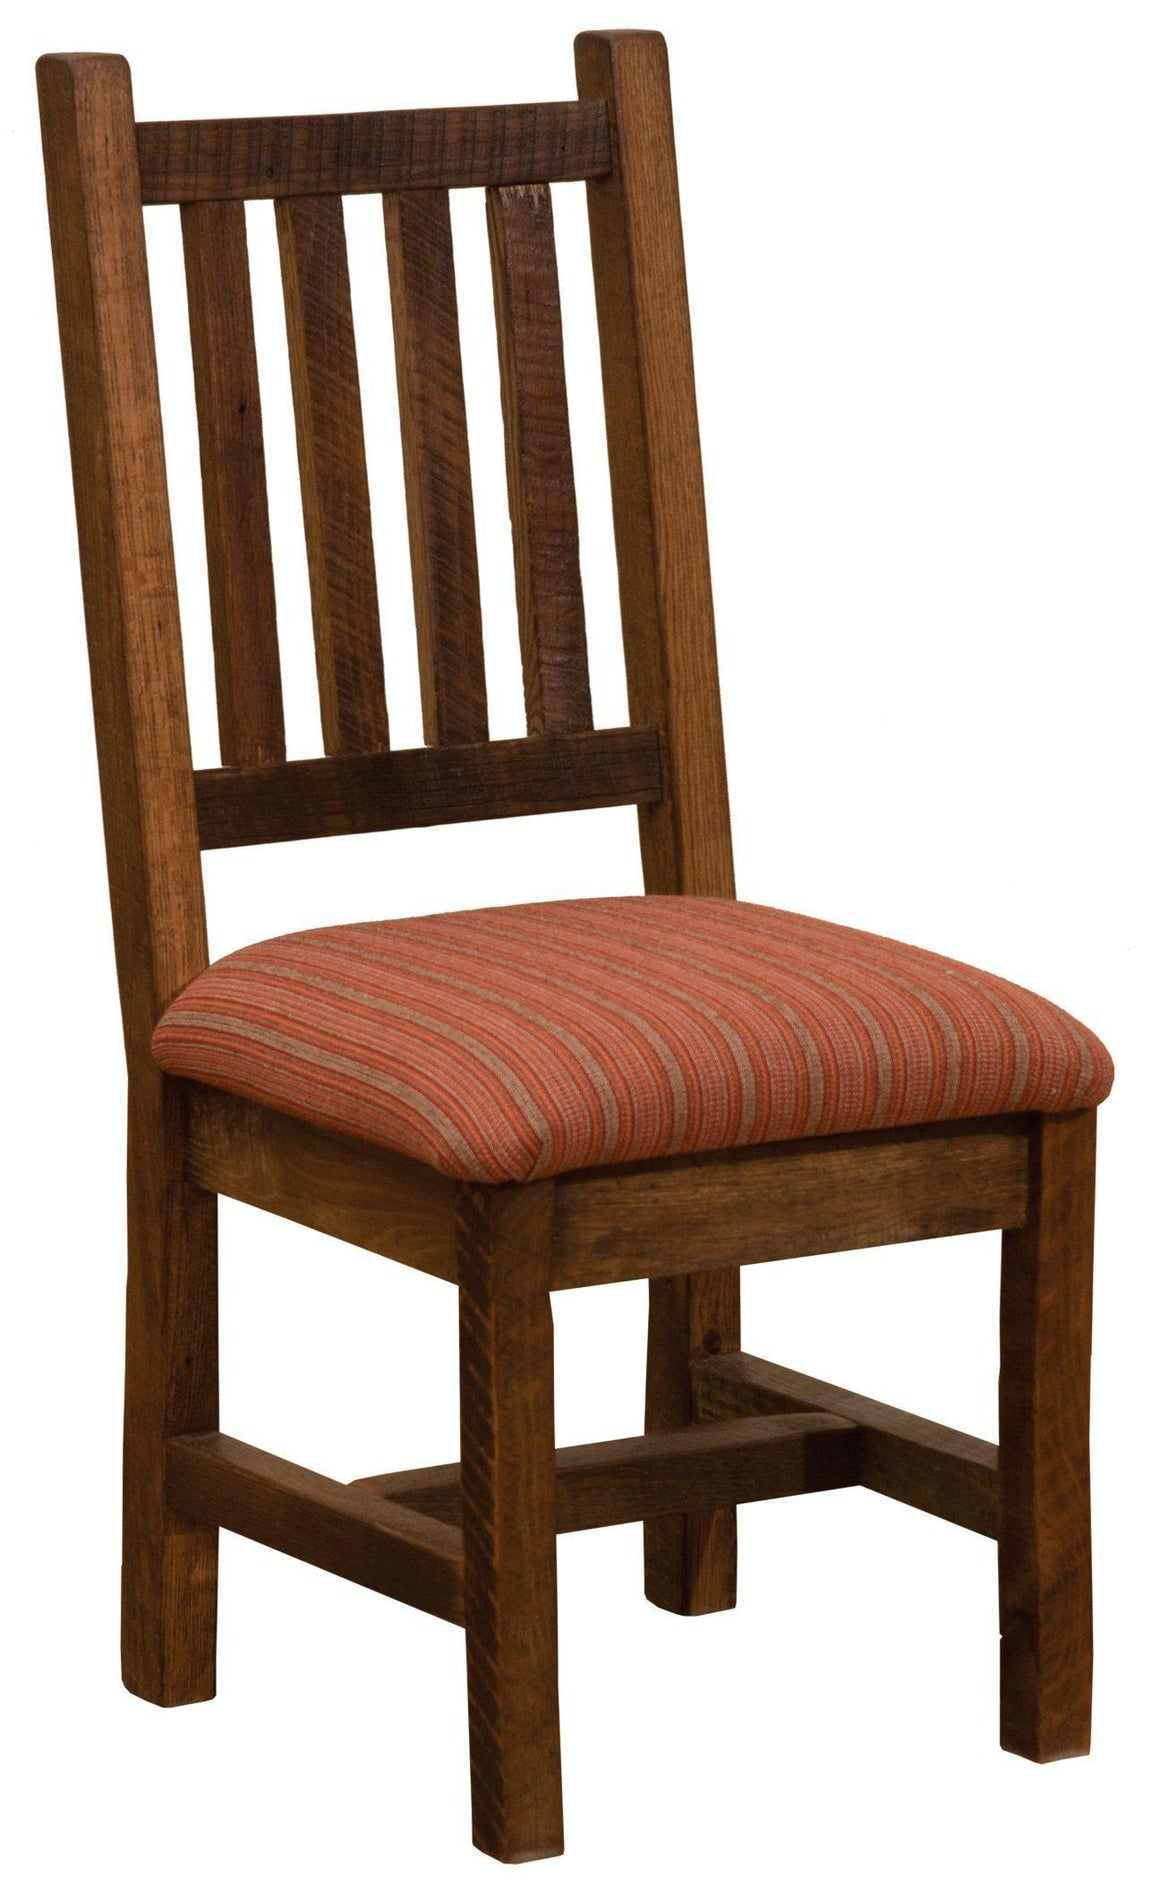 Barnwood Prairie Dining Side Chair -  Upholstered Seat - Standard Finish - Rustic Deco Incorporated